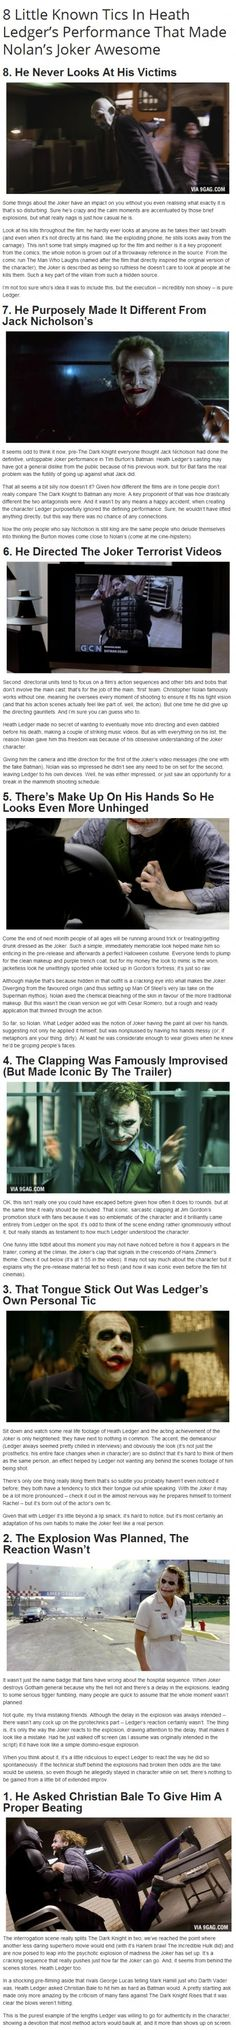 If you ask me, Heath Ledger made the Joker character untouchable for the next generation. Seriously. He was incredible.